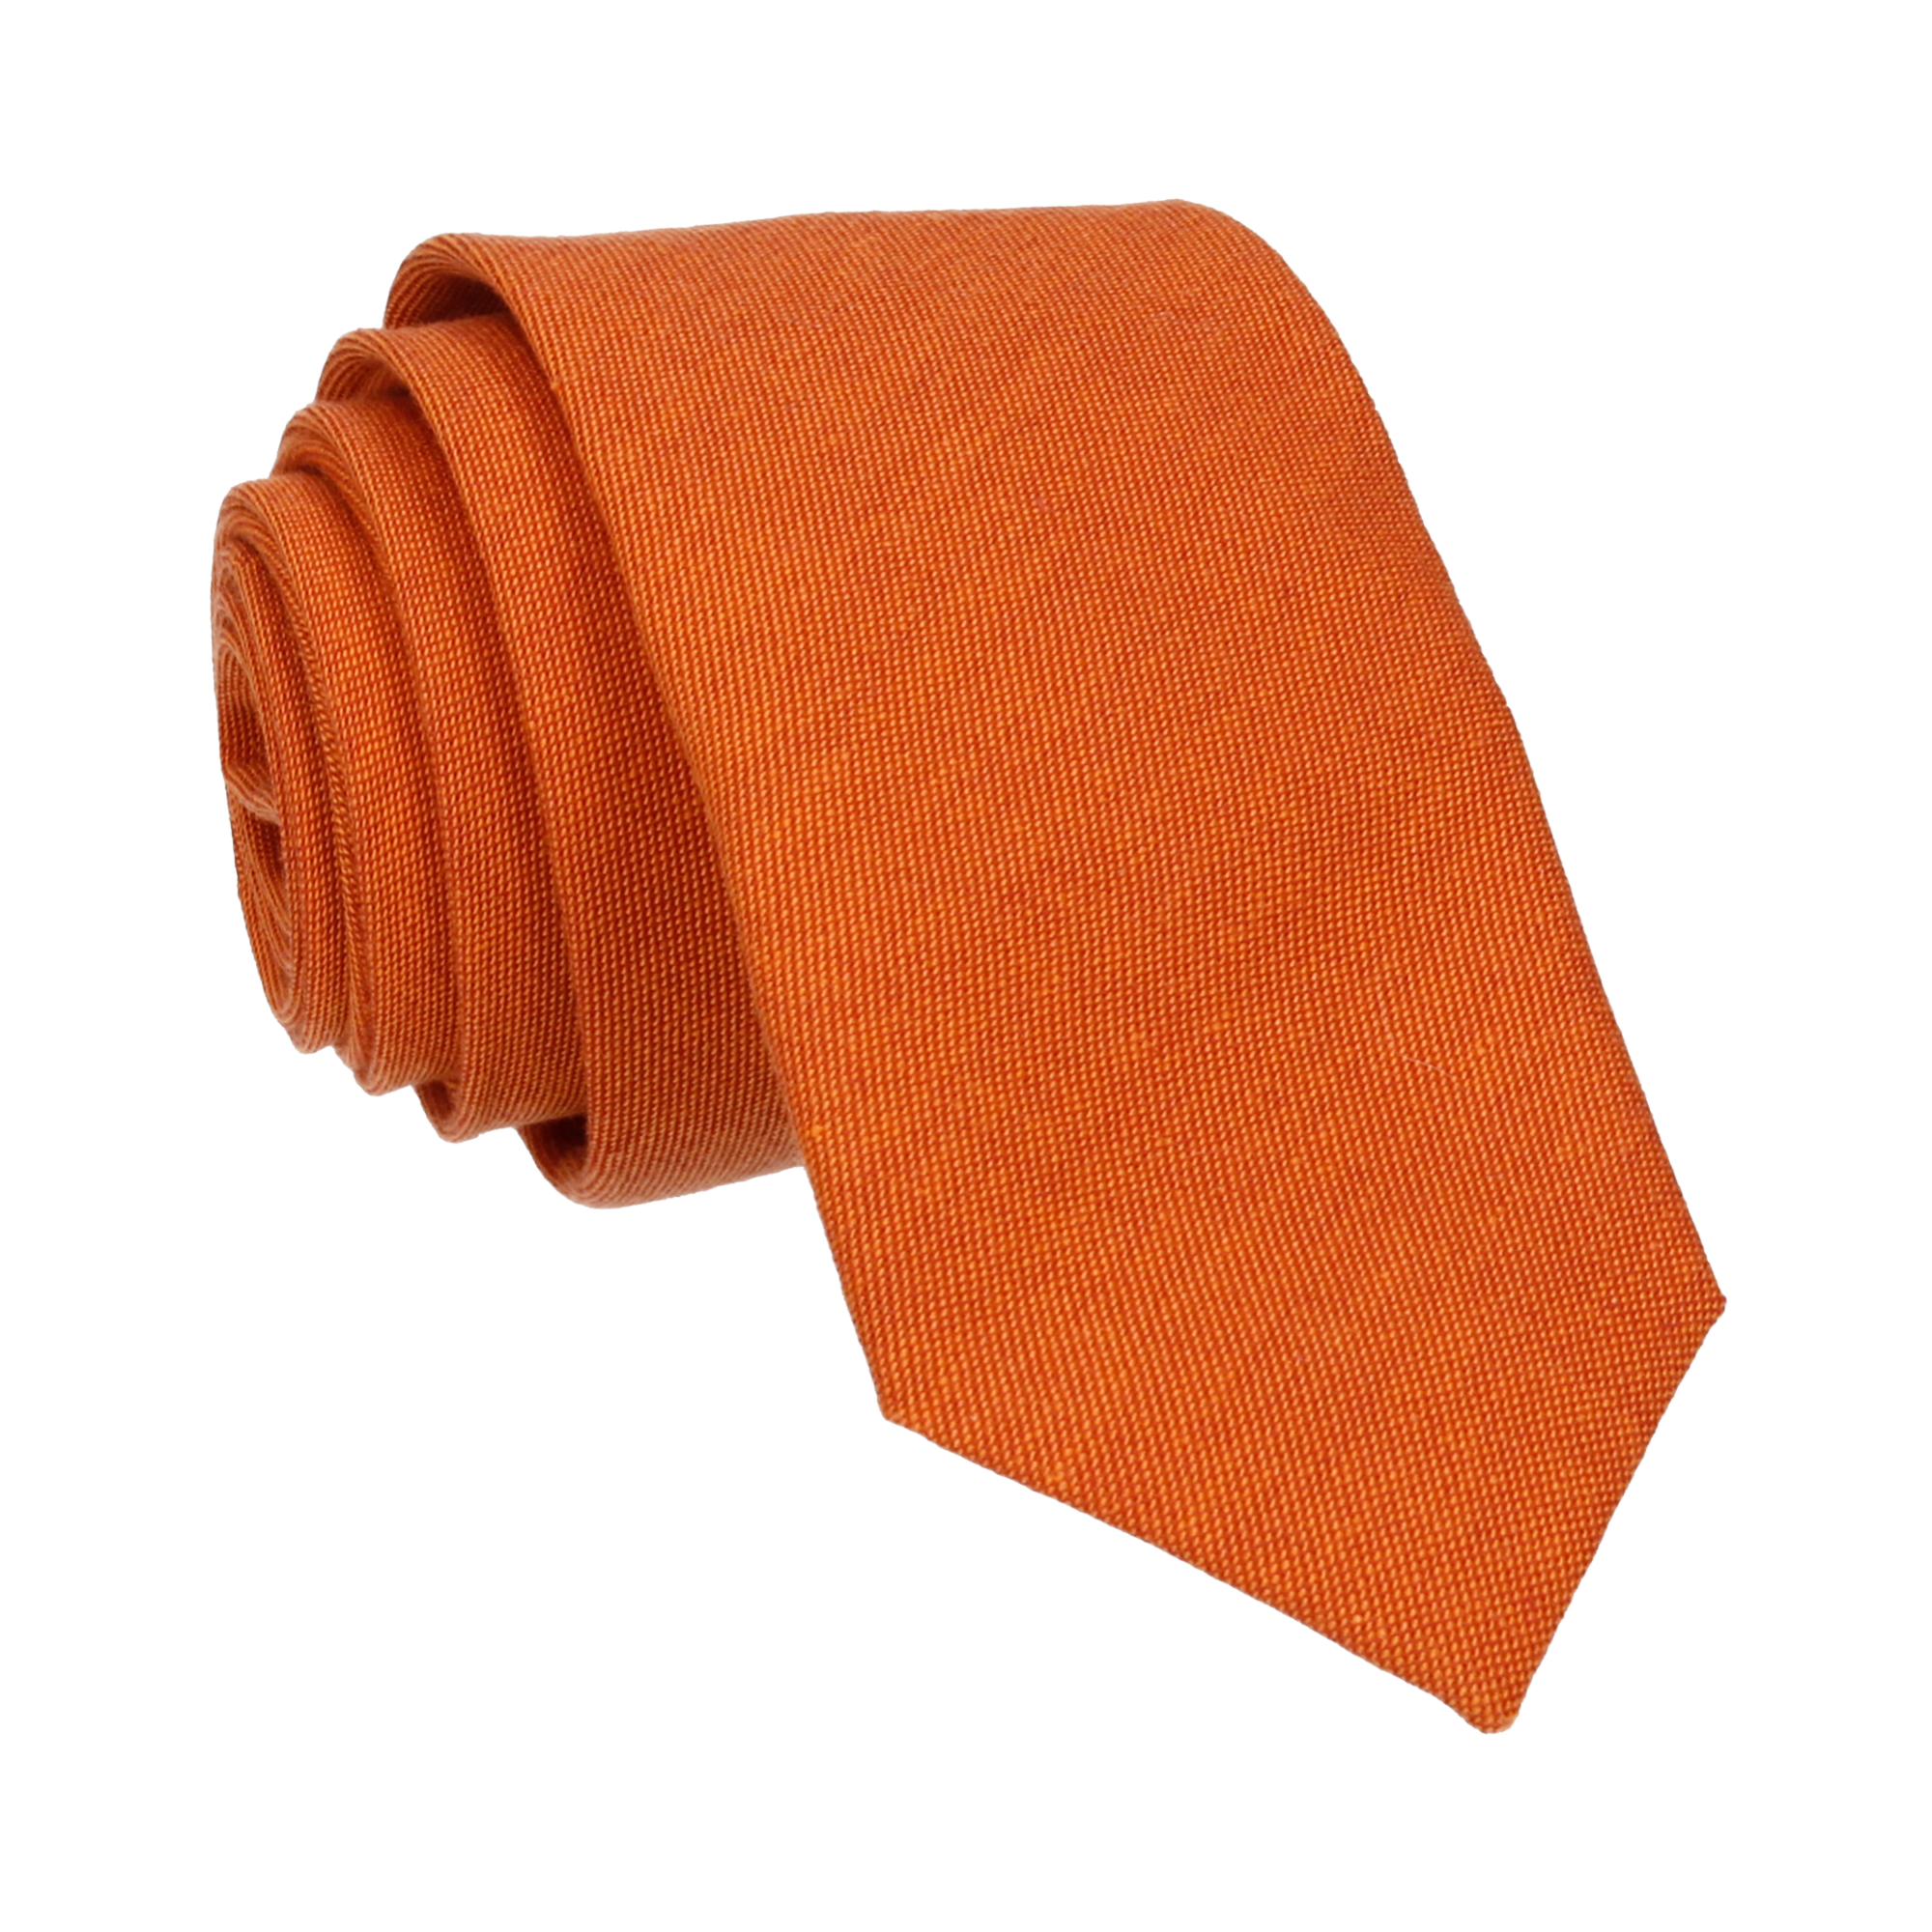 Cotton in Burnt Orange Tie